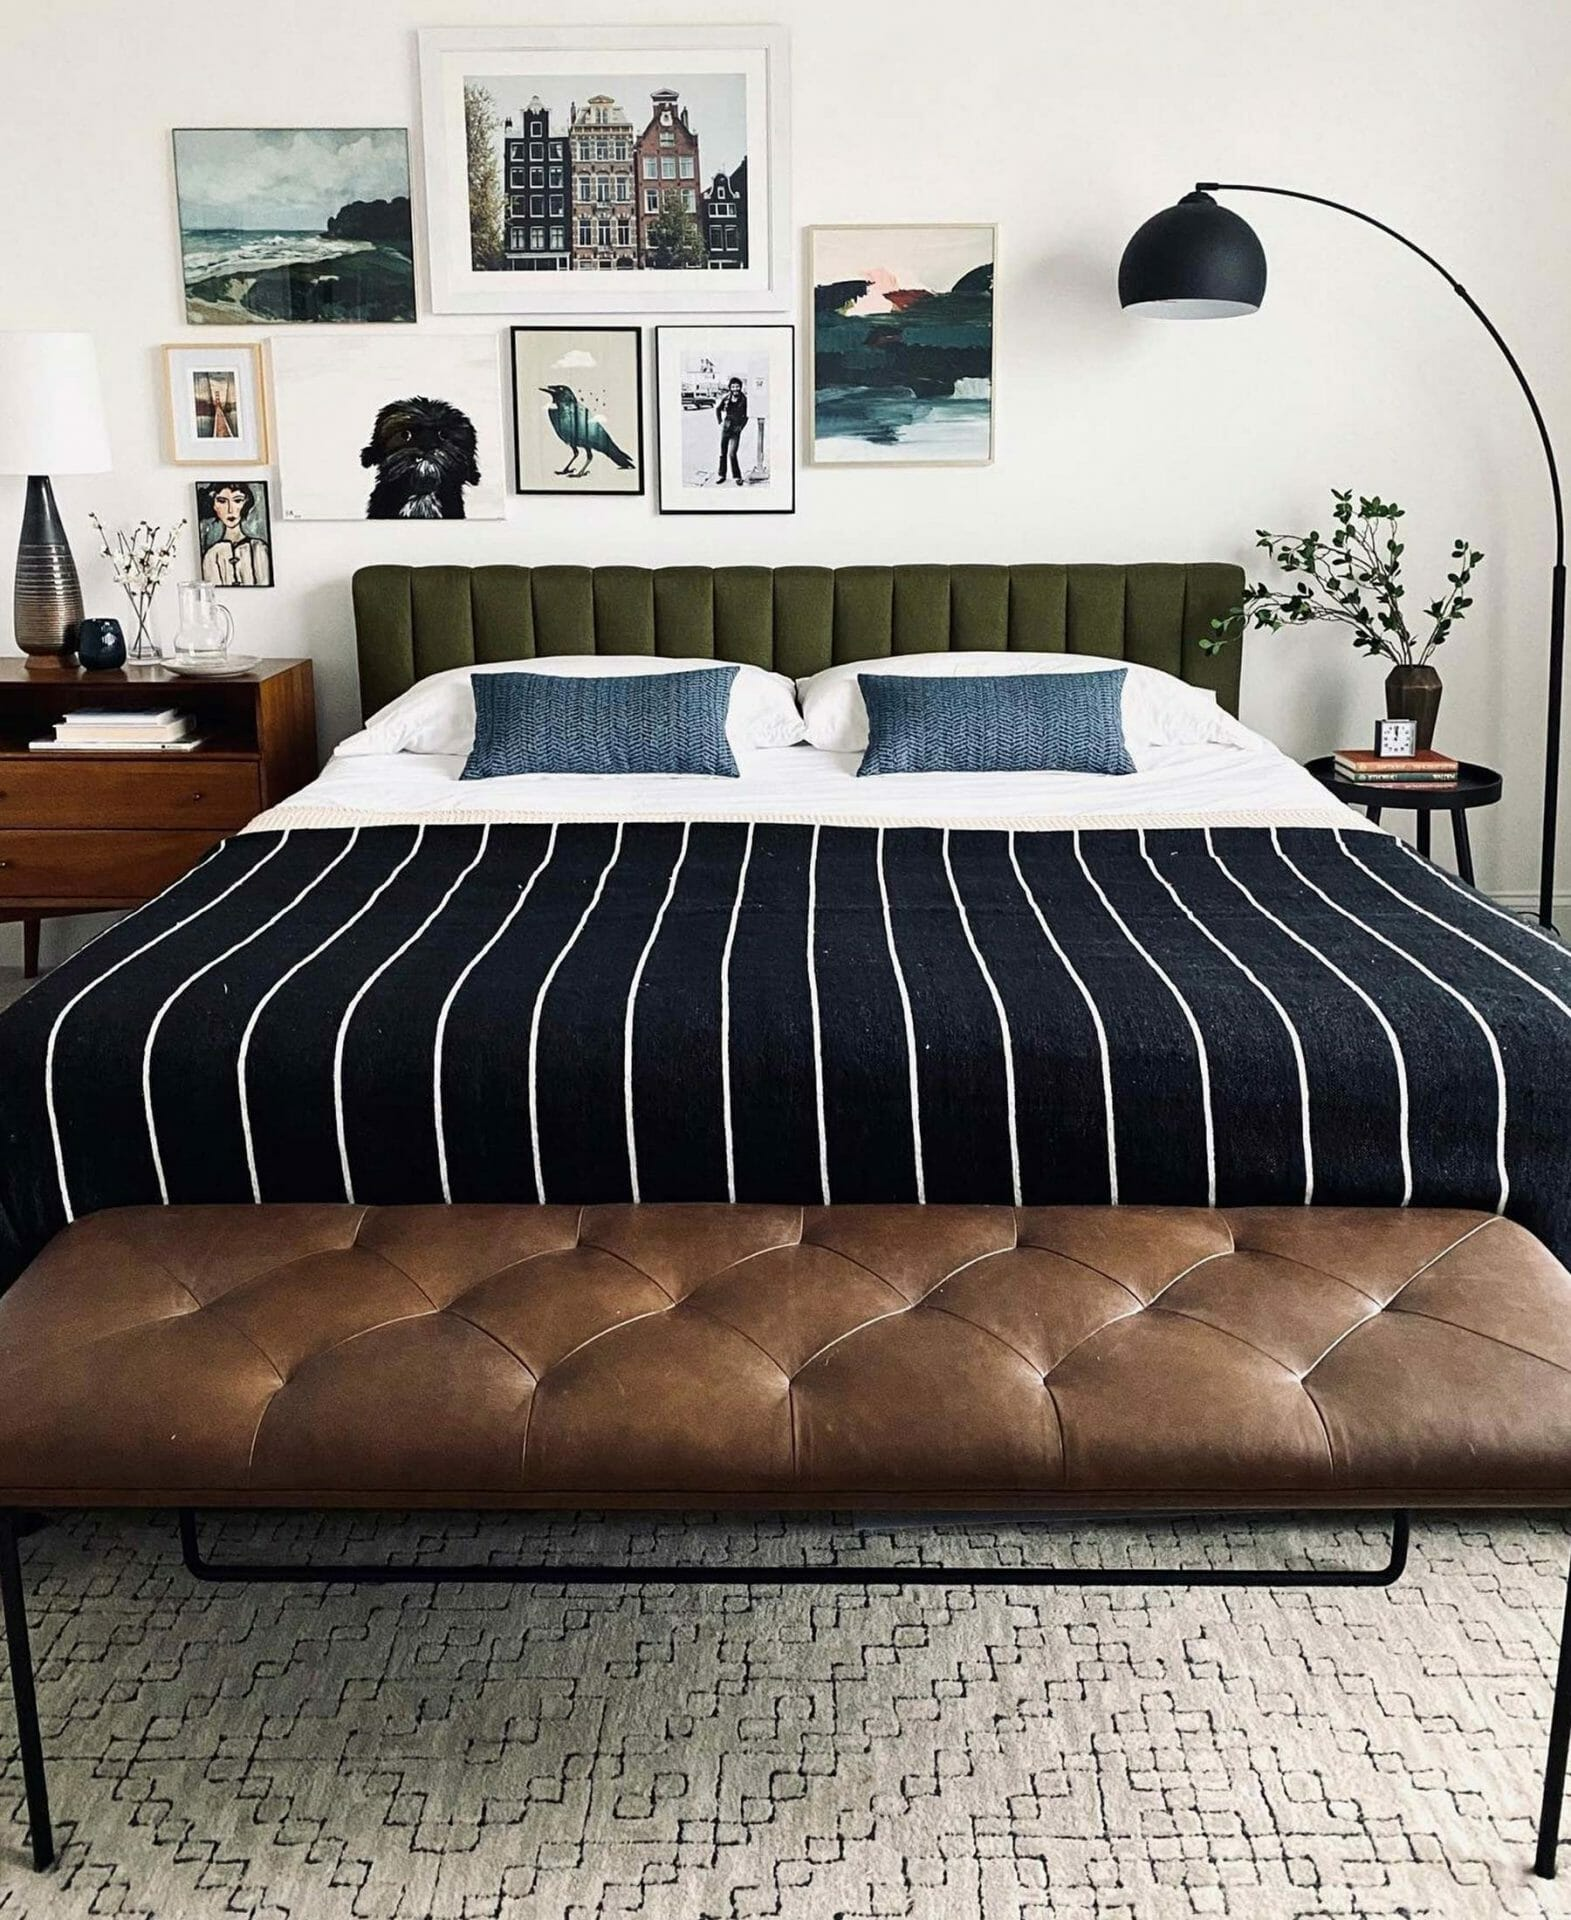 A bedroom with a queen sized bed and brown Article Level Bench is shown.